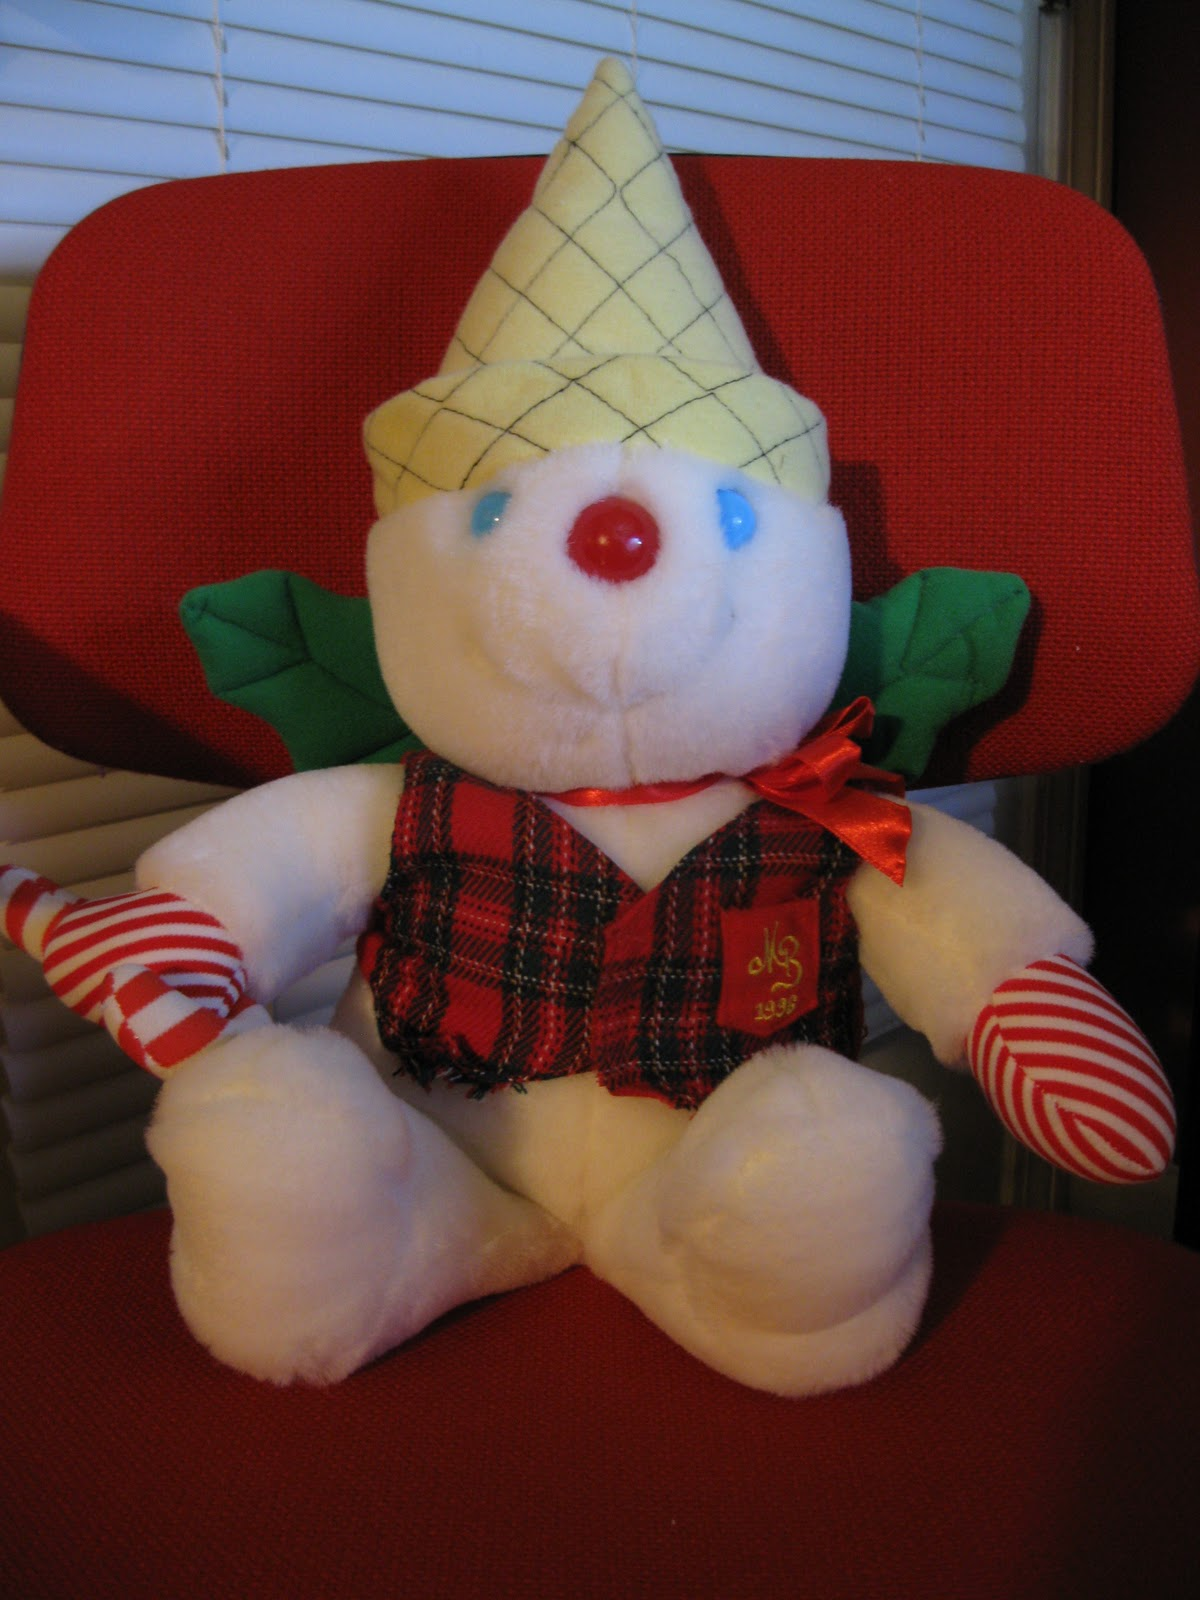 Goodwill Greenville Sc >> Three Makes A Collection: Mr. Bingle arrives for Christmas